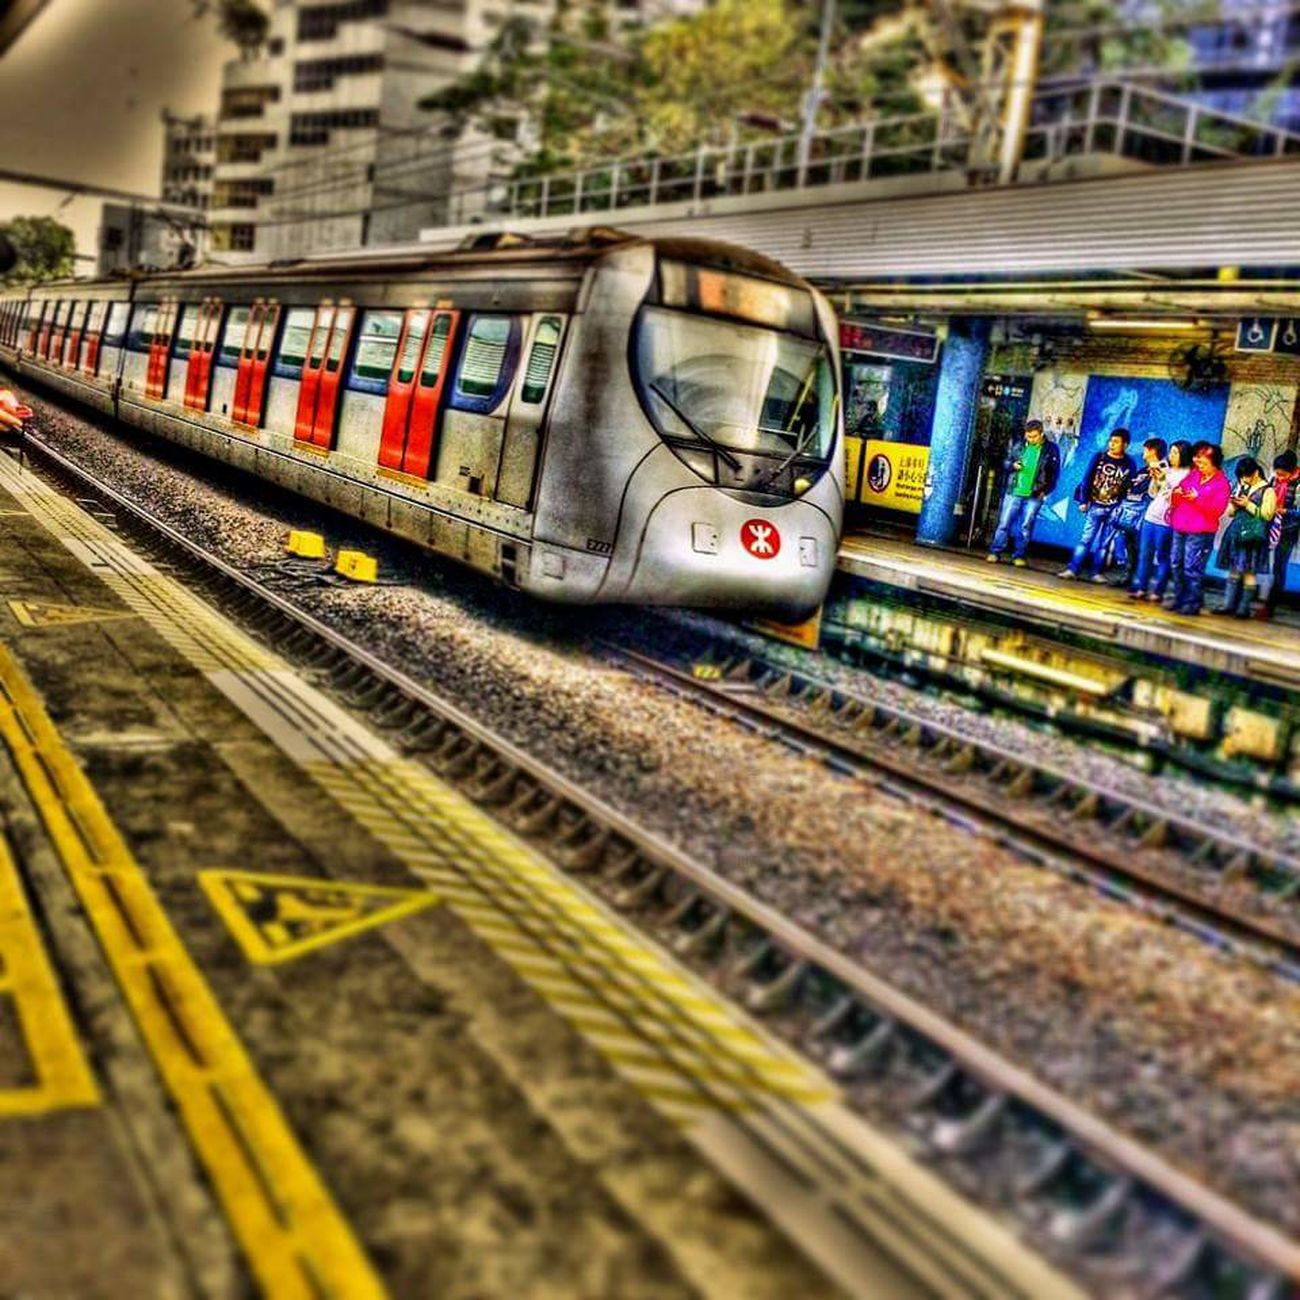 Approaching! Hdriphoneographer Photography Traveling Train Station Train Trainphotography Train_of_our_world People Photography Hdr Edit Awesome_view Transportation Travel Travel Destinations Traveler's Lifestyle Trains_r_the_best Hdr_gallery EyeEm Best Shots Picsart Eyeemphotography